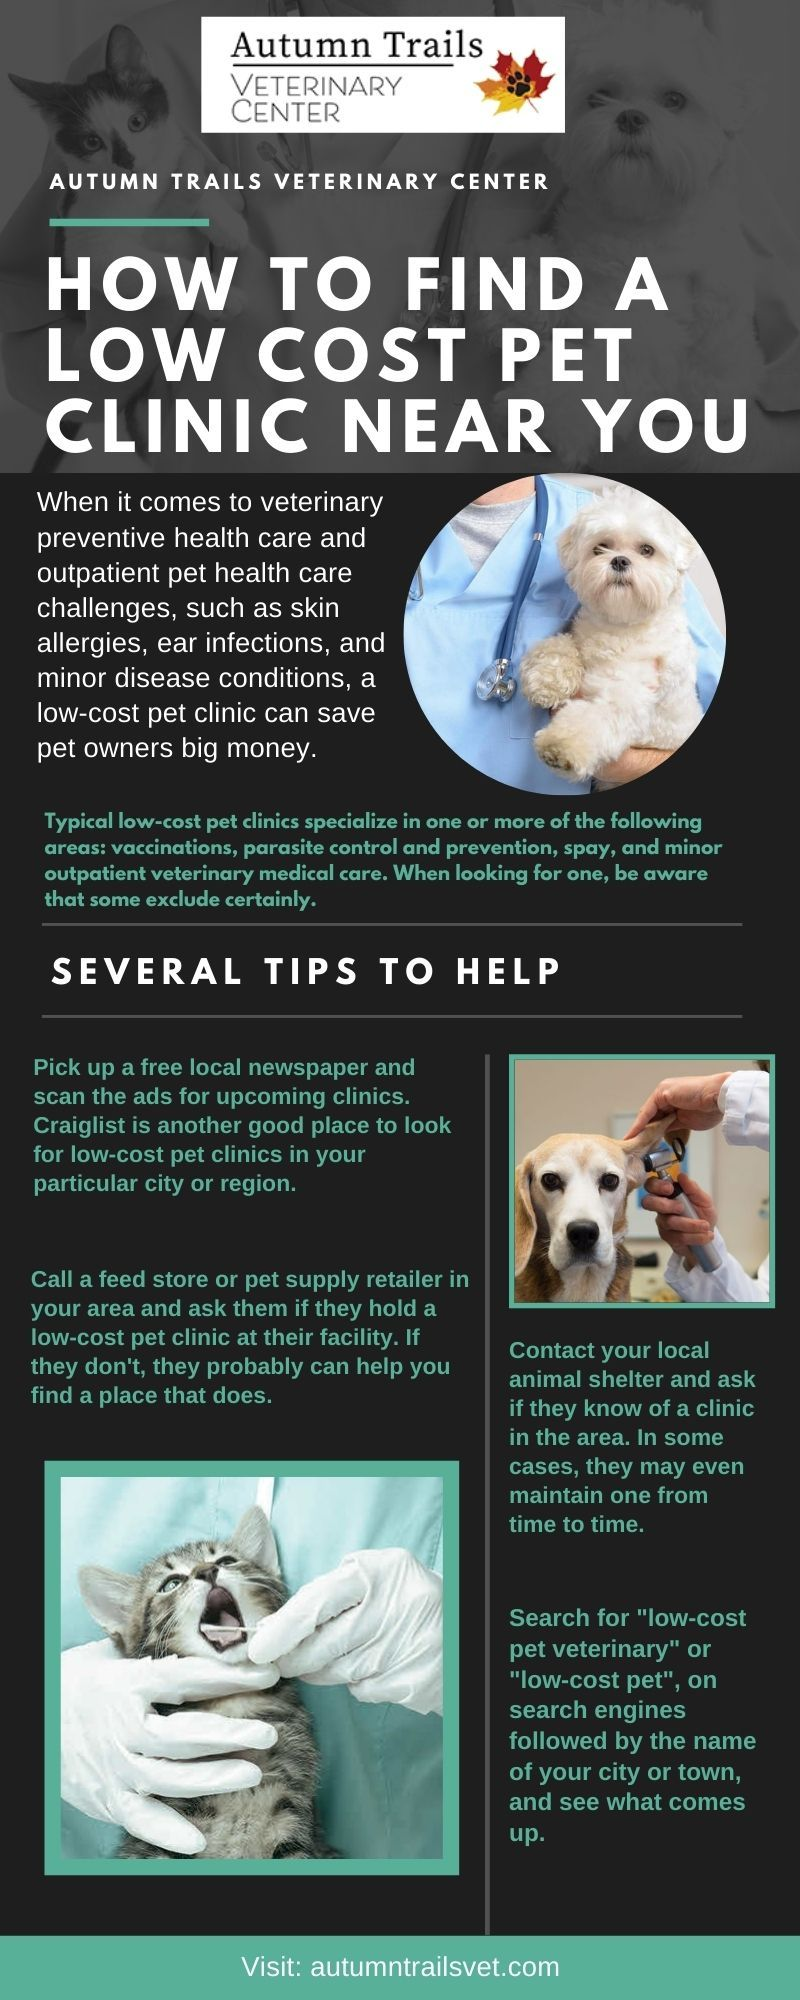 How To Find A Low Cost Pet Clinic Near You In 2020 Pet Clinic Pet Health Care Preventative Health